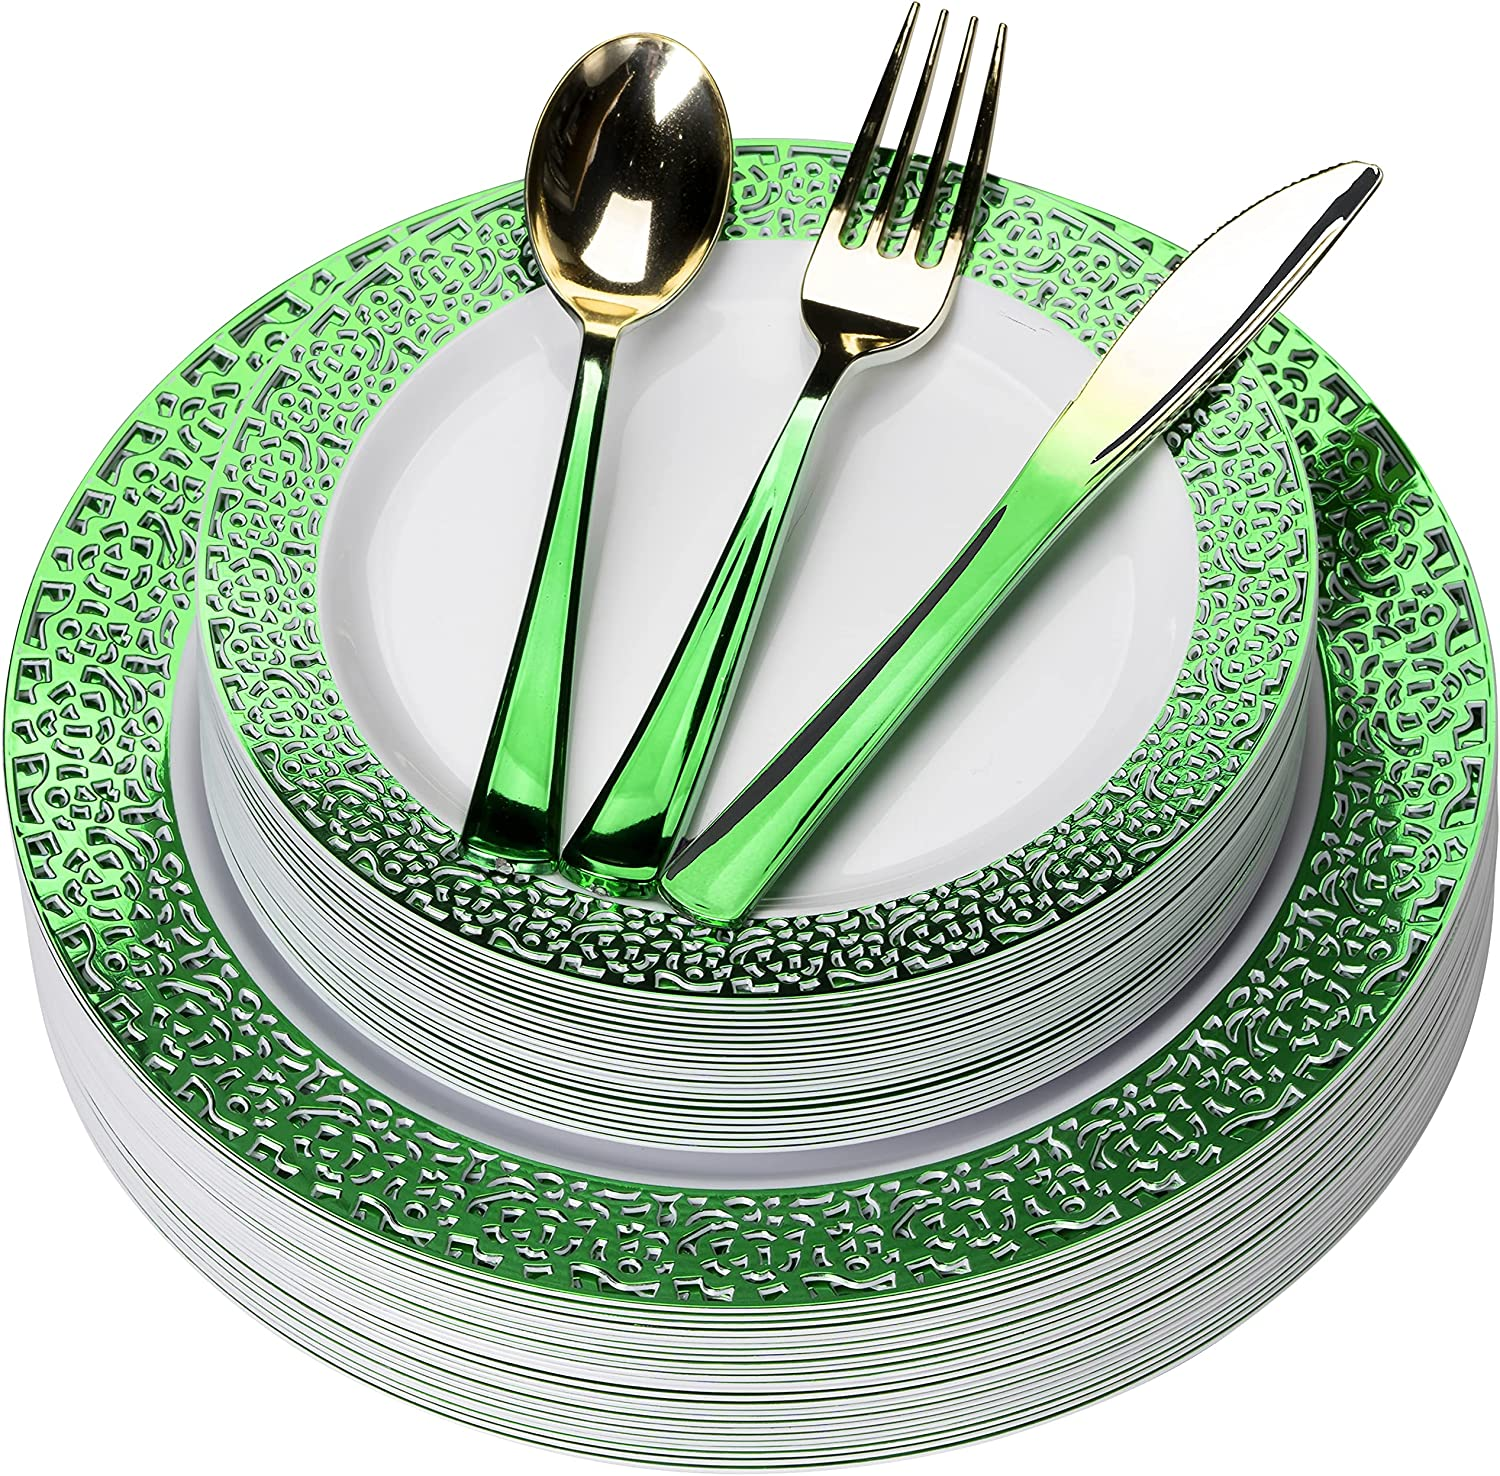 FOMOICA Green Plastic Plates and PCS Cheap Popular product bargain 125 Silverware - Gold